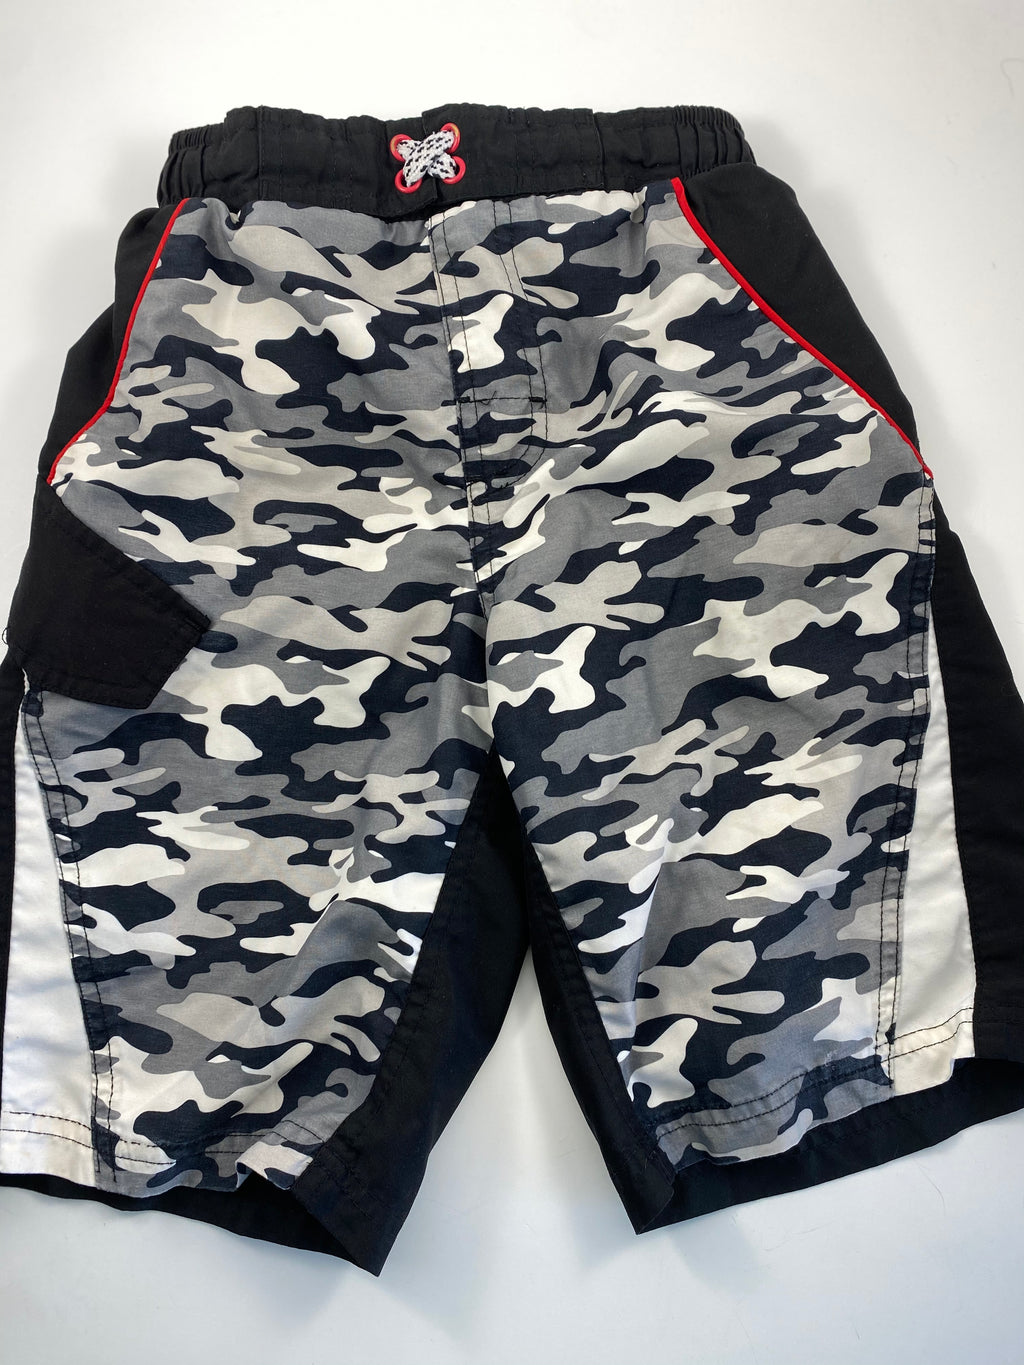 Boy's Swimsuit - Size 7/8